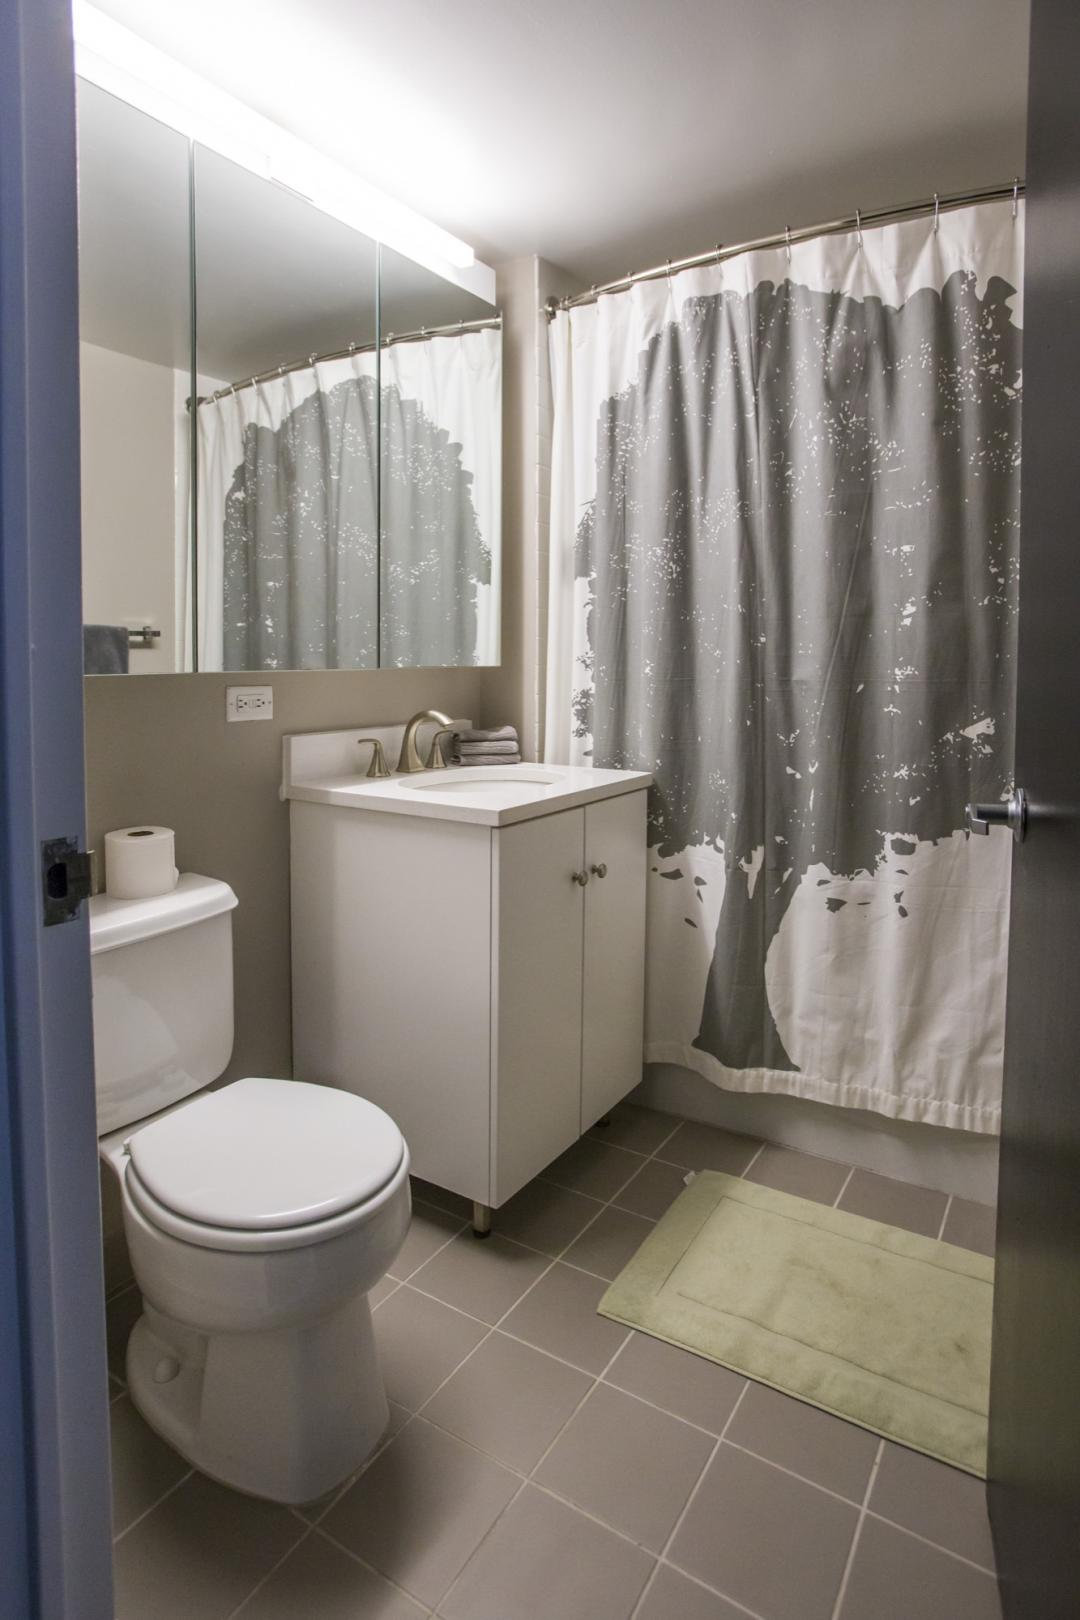 Condos for rent at The Chrystie in NYC - Bathroom